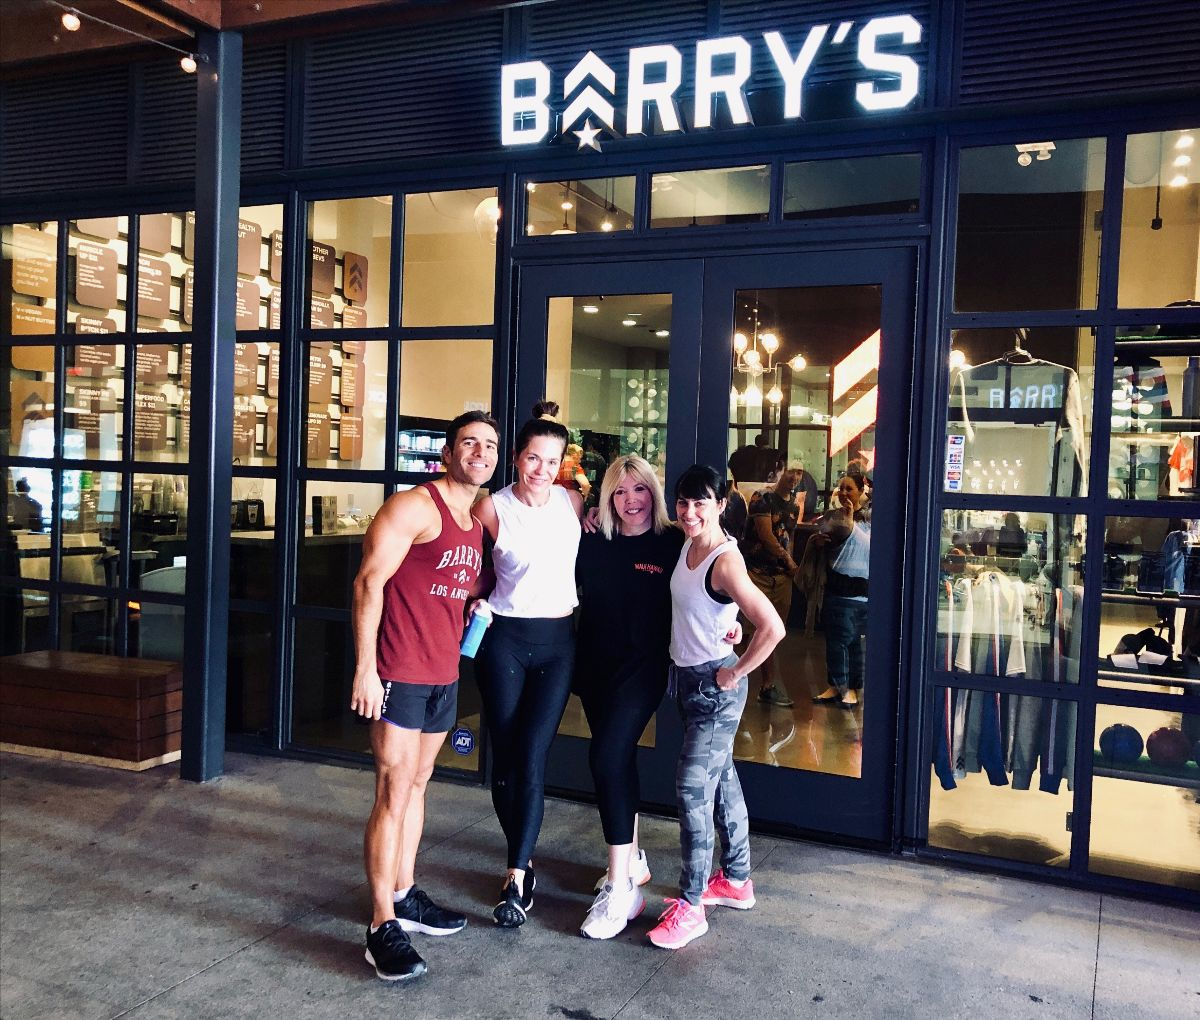 Barry's Bootcamp CEO, Joey Gonzalez joins EMA CEO, Debbie Levin and Board Members Katie Aselton and Constance Zimmer for an Earth Week workout